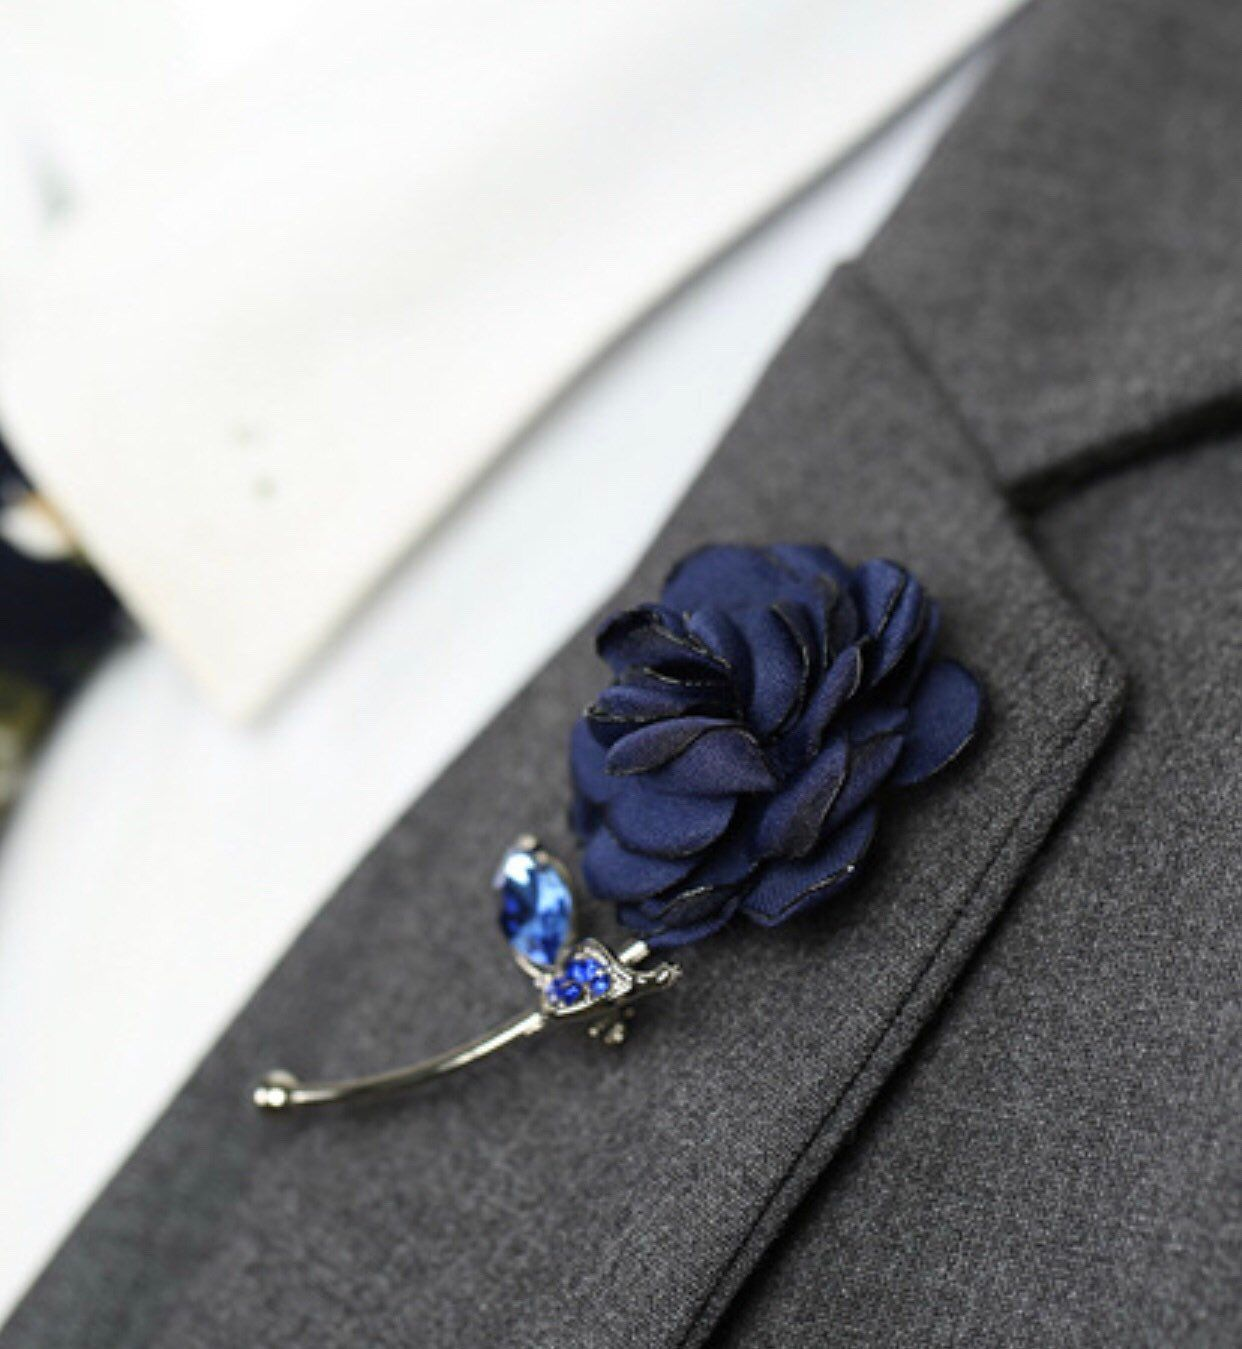 Blue Rose Flower Lapel Pin, Enamel Pin Cloth Art Accessories Brooch Pin Men Women Pin Groomsmen Boutonniere Fashion Wedding Favors Suit pin is part of Clothes Art Flower - Blue Rose Flower Lapel Pin Women Men Cloth Brooch pin   Blue Rose Flower Lapel Pin Silver Metal Women Men Cloth Brooch pin Flower and Metal Gold Pin and Barrel   As a gift, for weddings, the office, date night Perfect every single day! This lapel flower adds an excellent pop of color to any outfit!              SAME DAY SHIPPING Perfect Size for her dress, Tuxedo suit, jacket pin